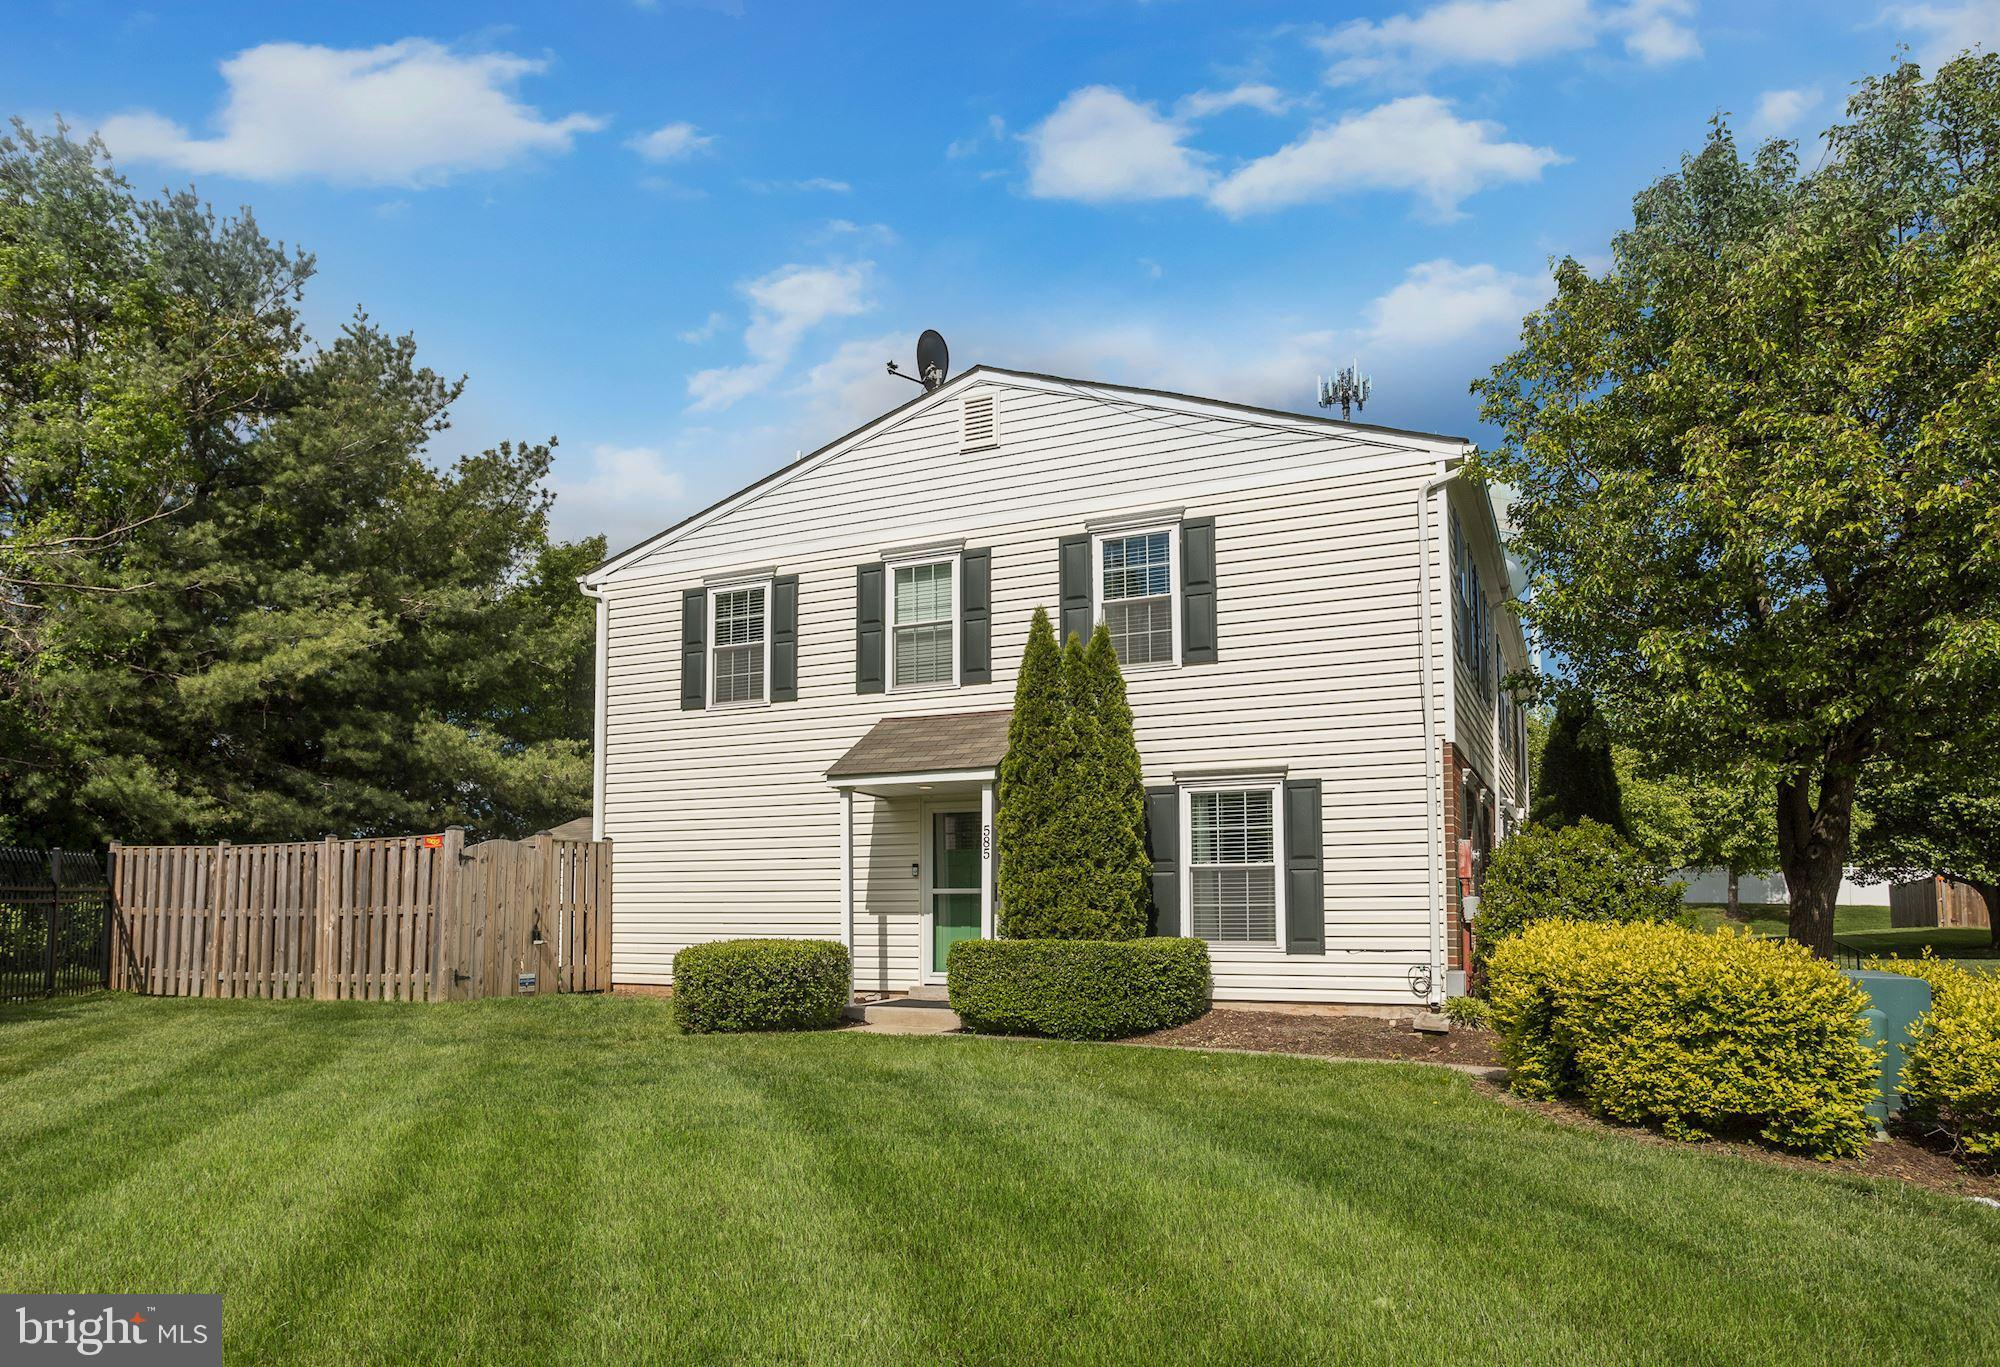 Completely renovated end of group townhome located in the Frederick Heights community boasting gleam